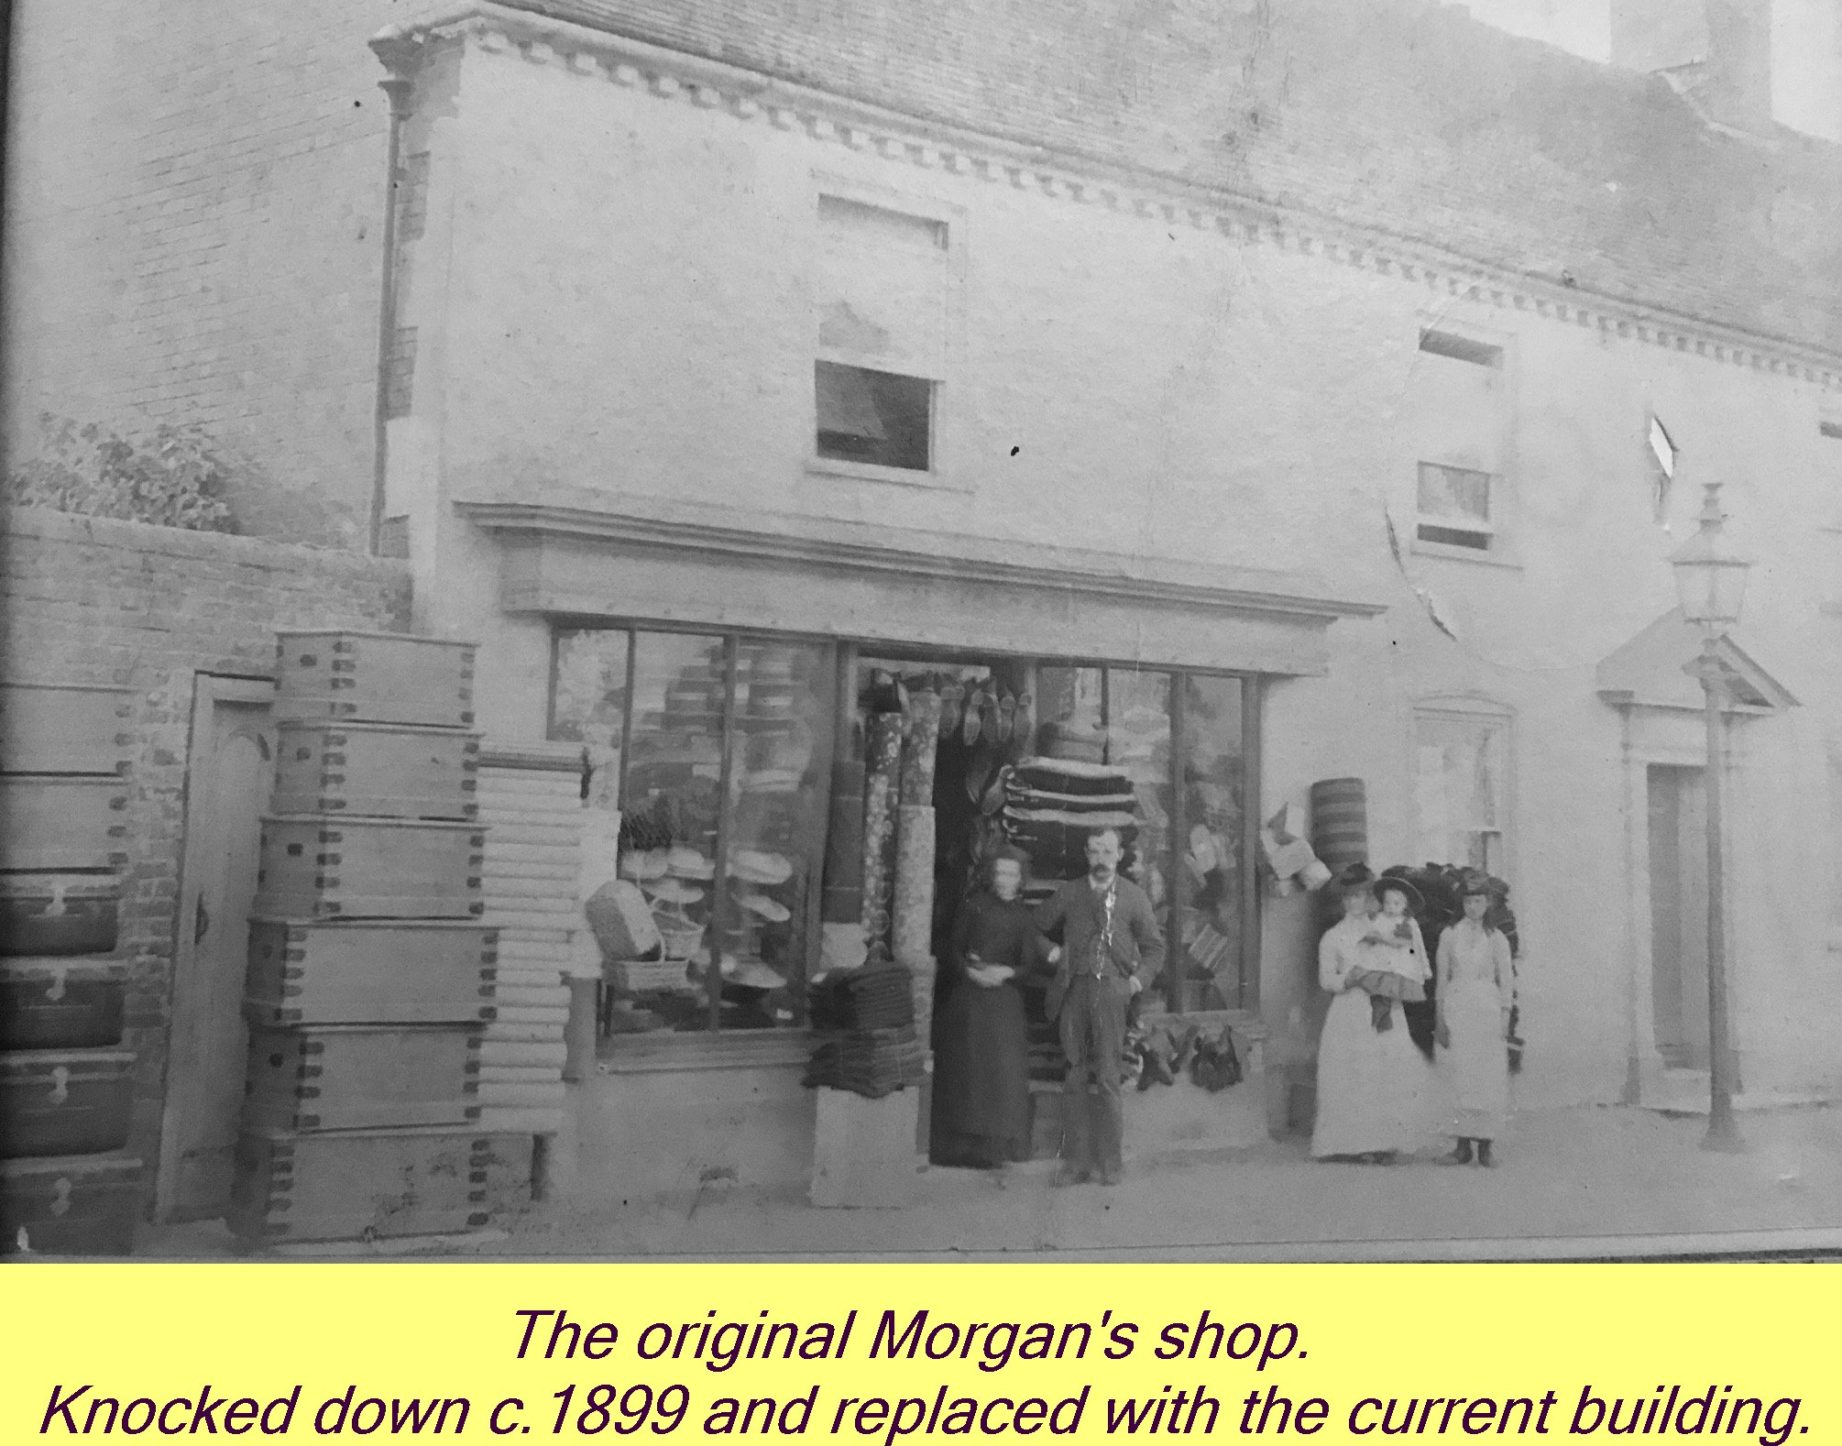 WESTBOURNE HISTORY PHOTO, MORGAN, SHOP, ORIGINAL